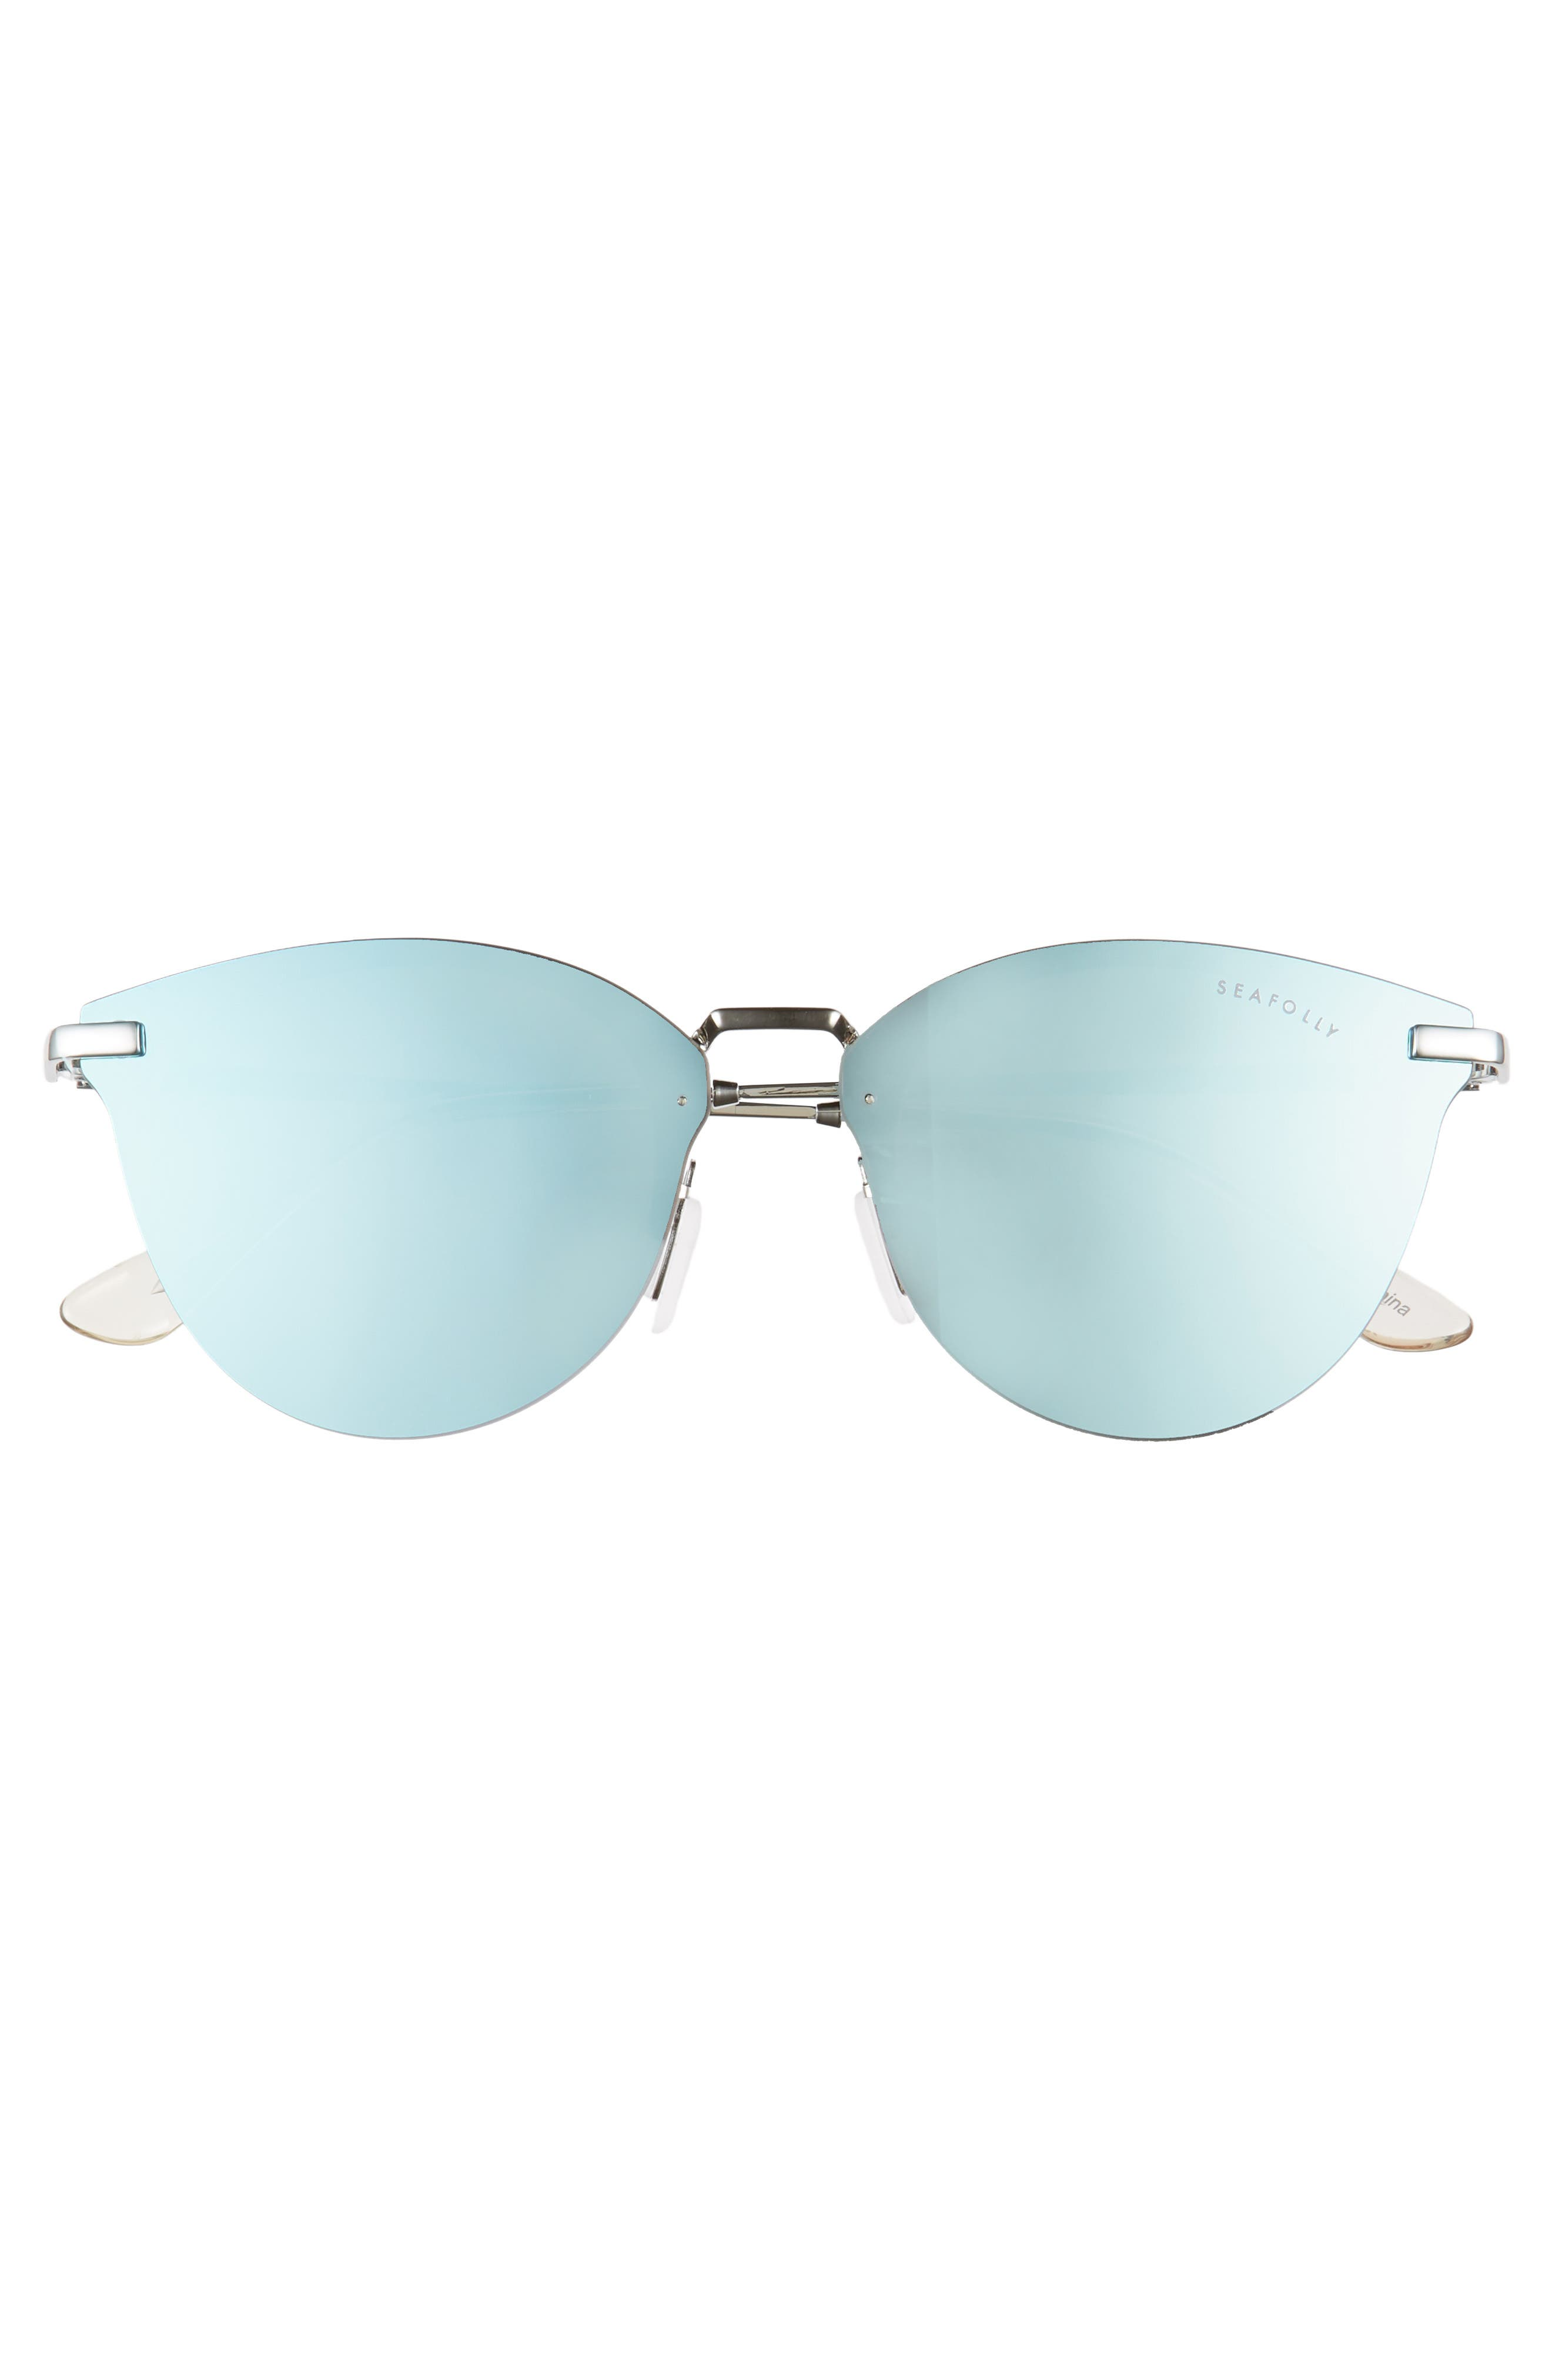 Wylies 50mm Rimless Sunglasses,                             Alternate thumbnail 3, color,                             400